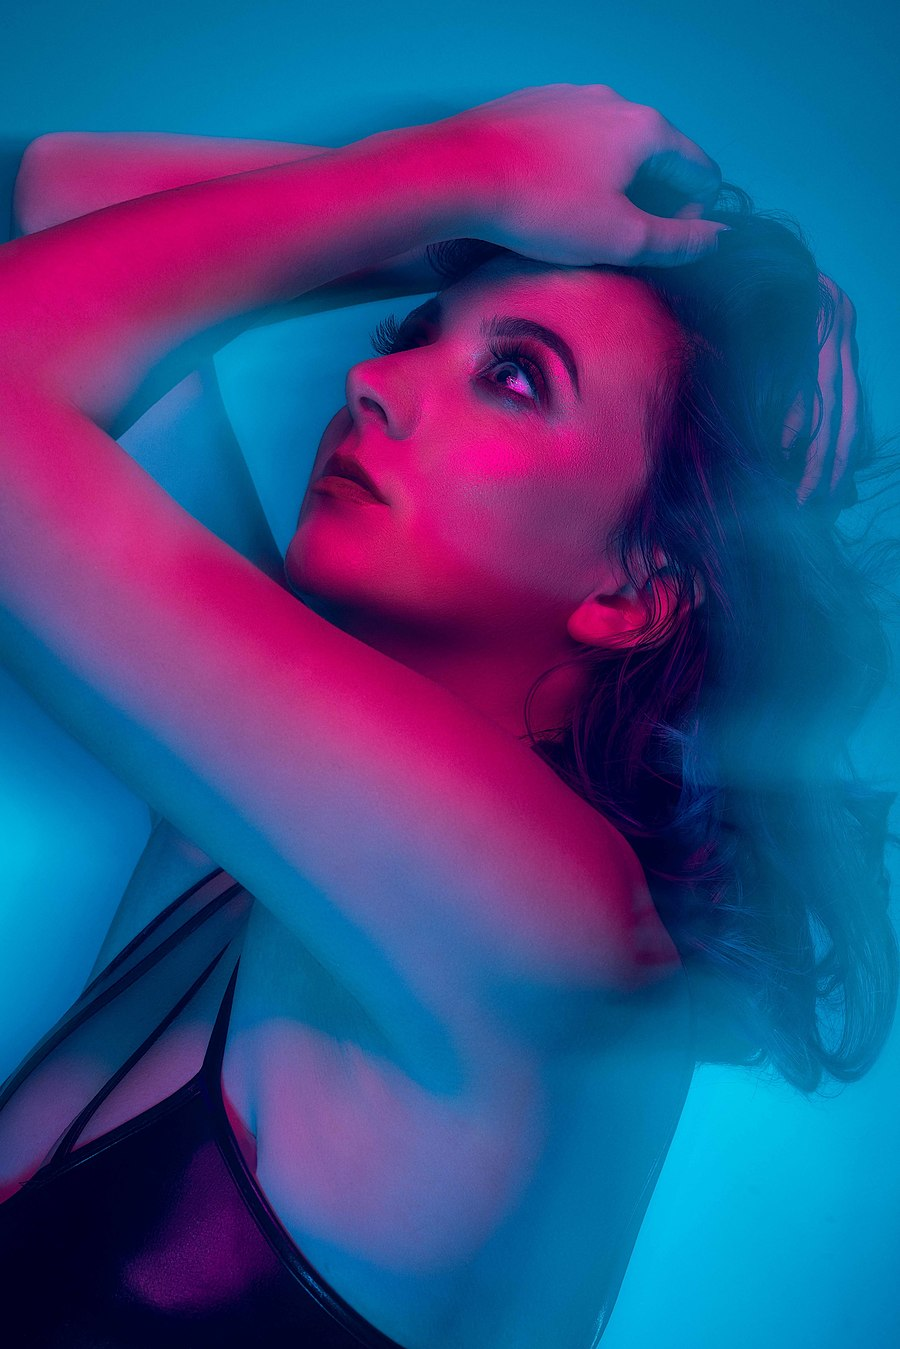 Blue Haze / Photography by David Abbs, Model PJ Elise, Makeup by Make Up With LRN, Taken at Shutter House / Uploaded 16th February 2019 @ 12:26 PM